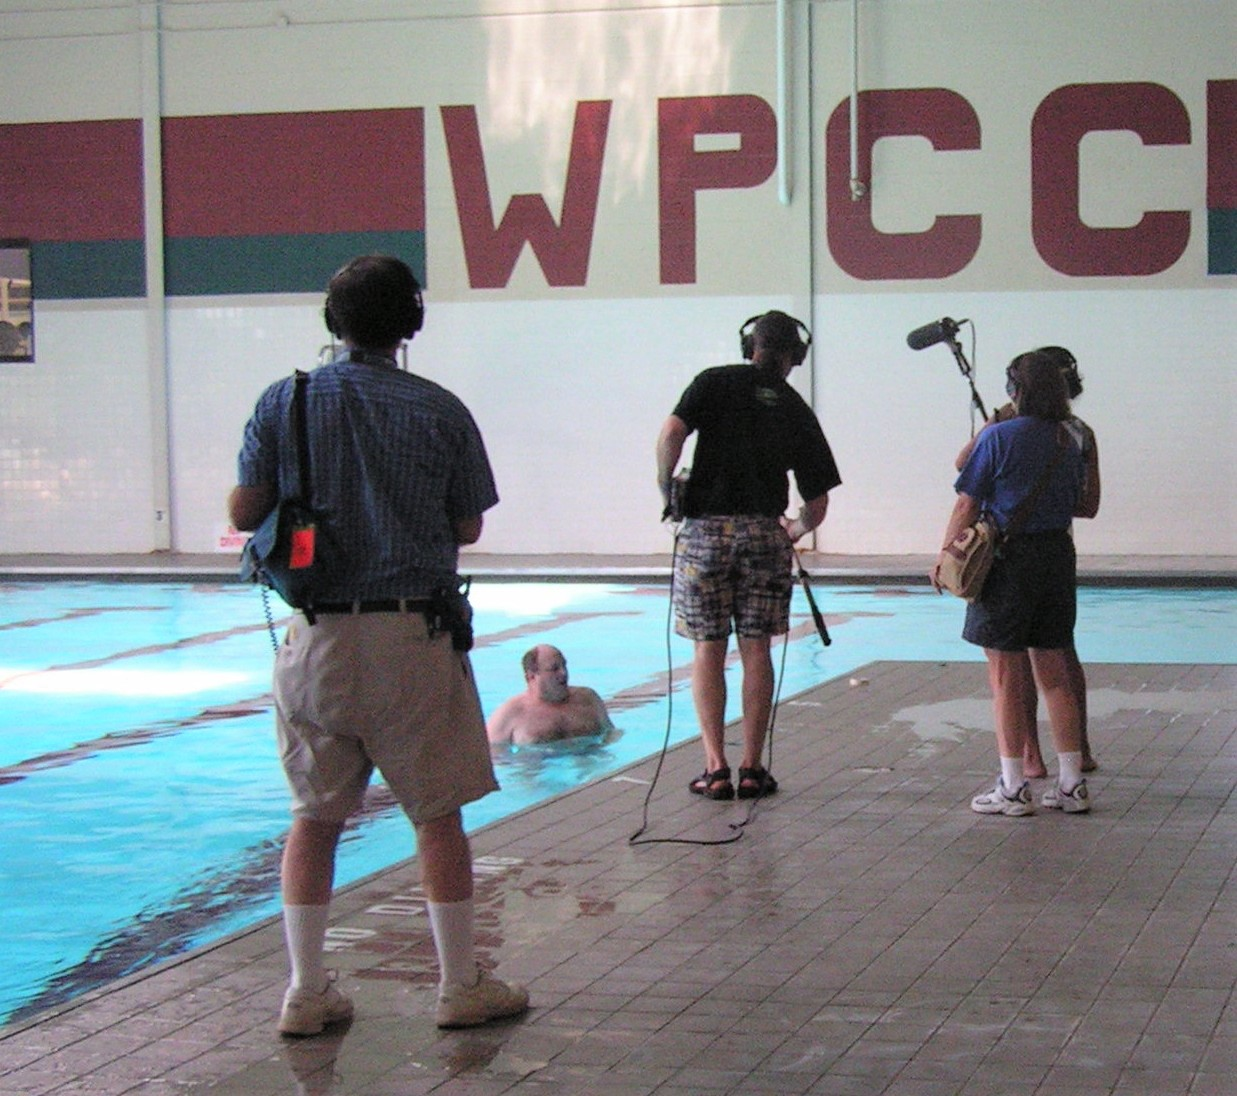 Two men and two women at a swimming pool recording the water sounds